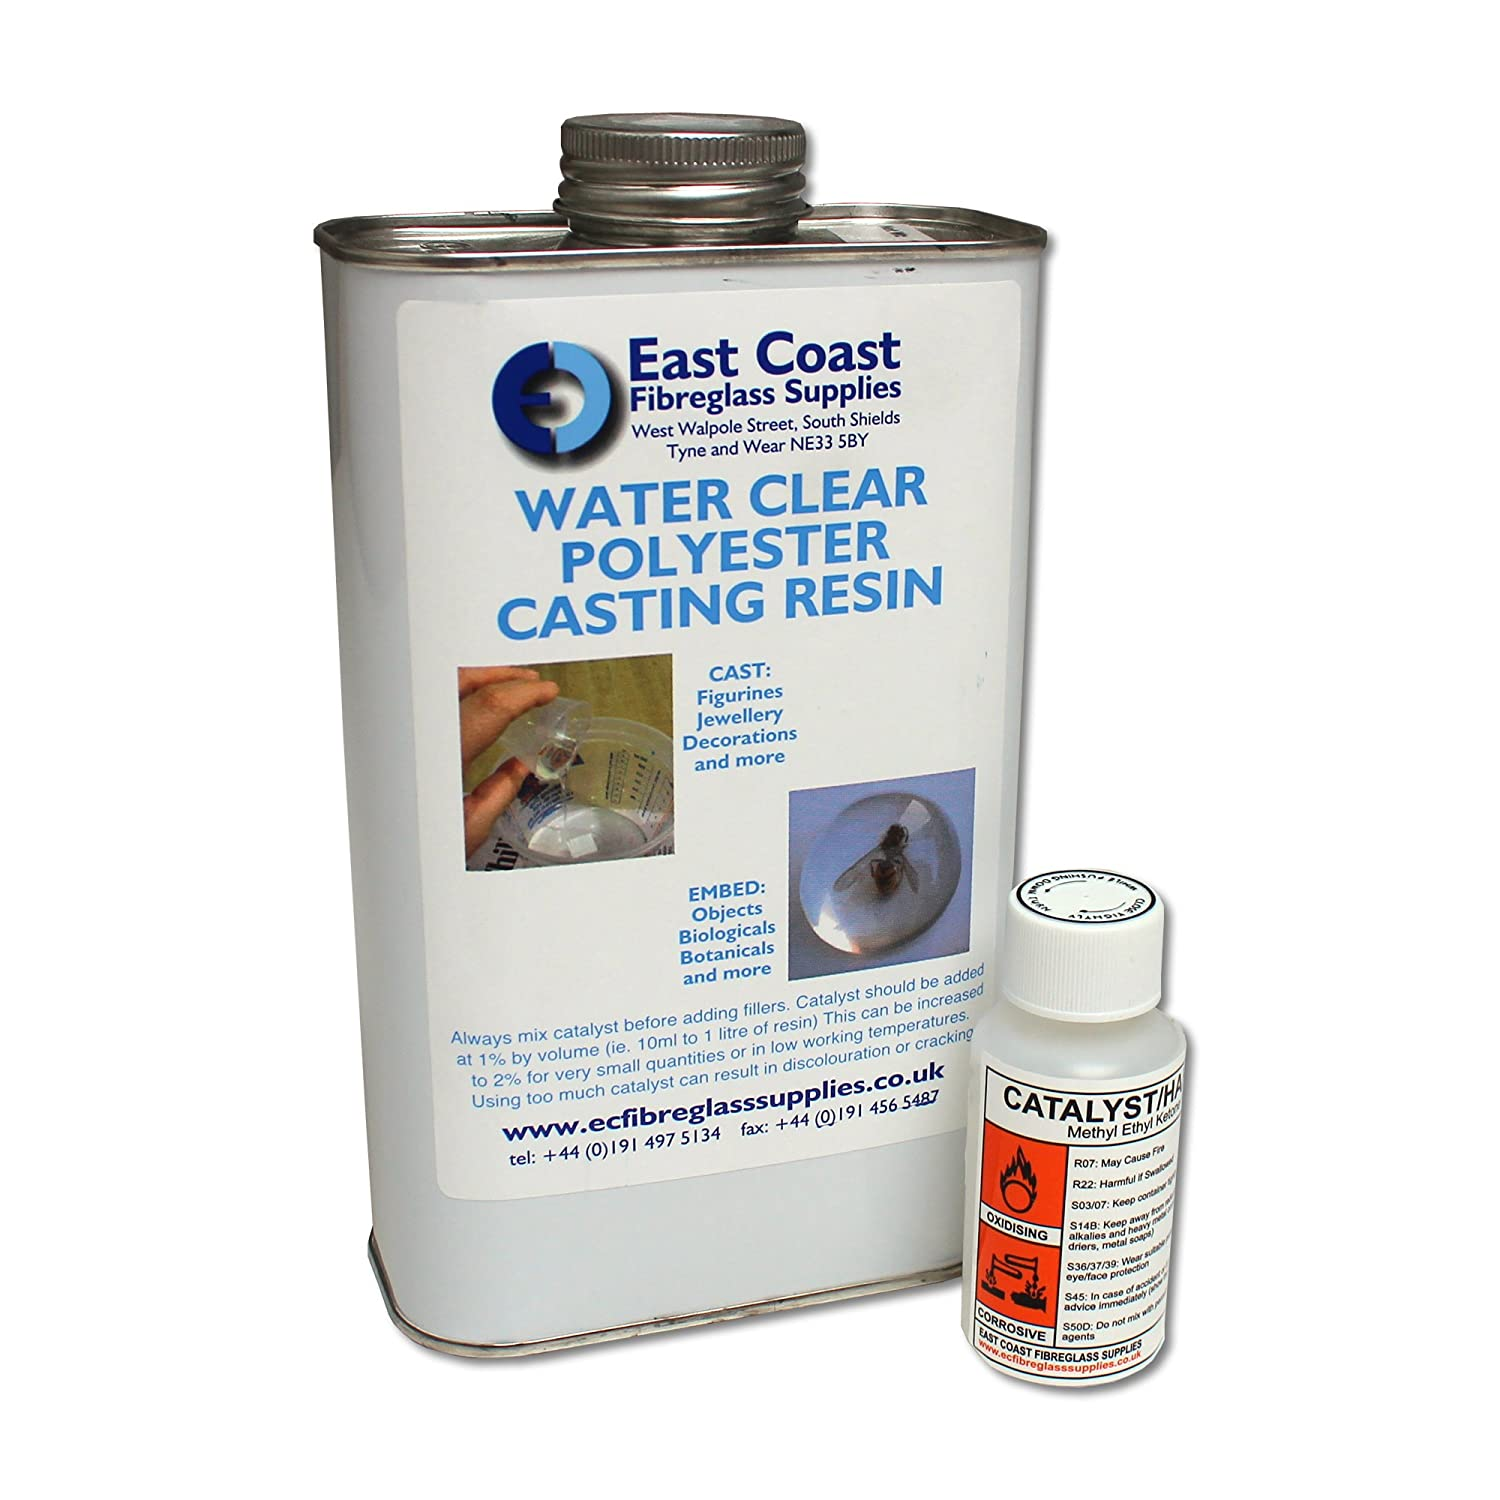 East Coast Water Clear Casting Resin - 1kg with free Catalyst East Coast Fibreglass